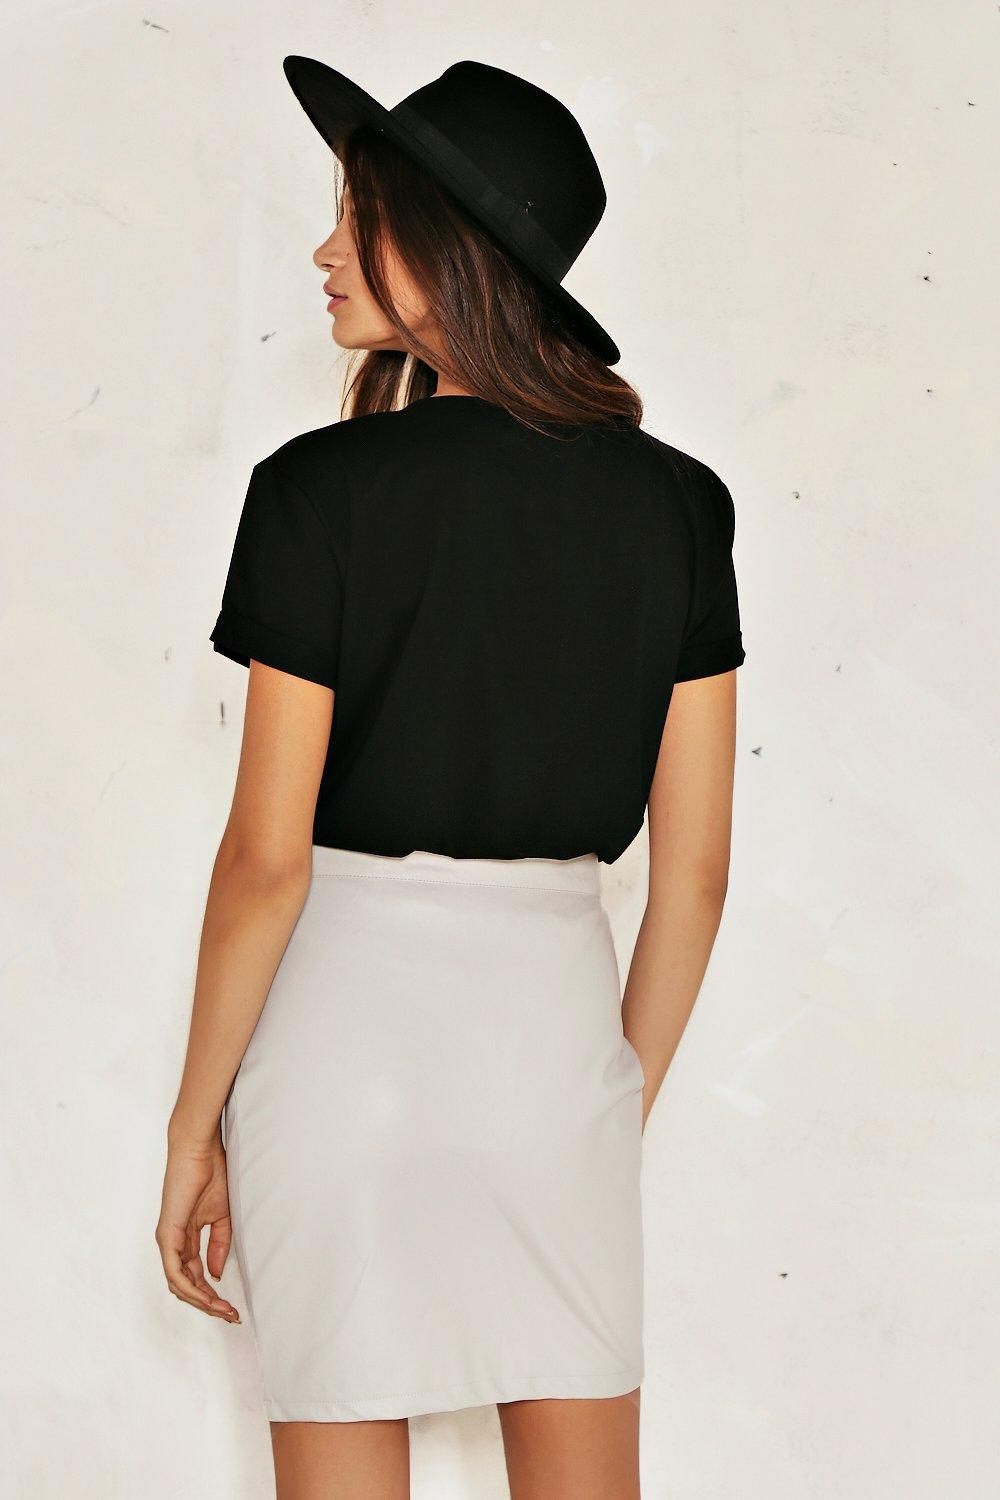 59aa7eb88 Bella Faux Leather Skirt | Shop Clothes at Nasty Gal!